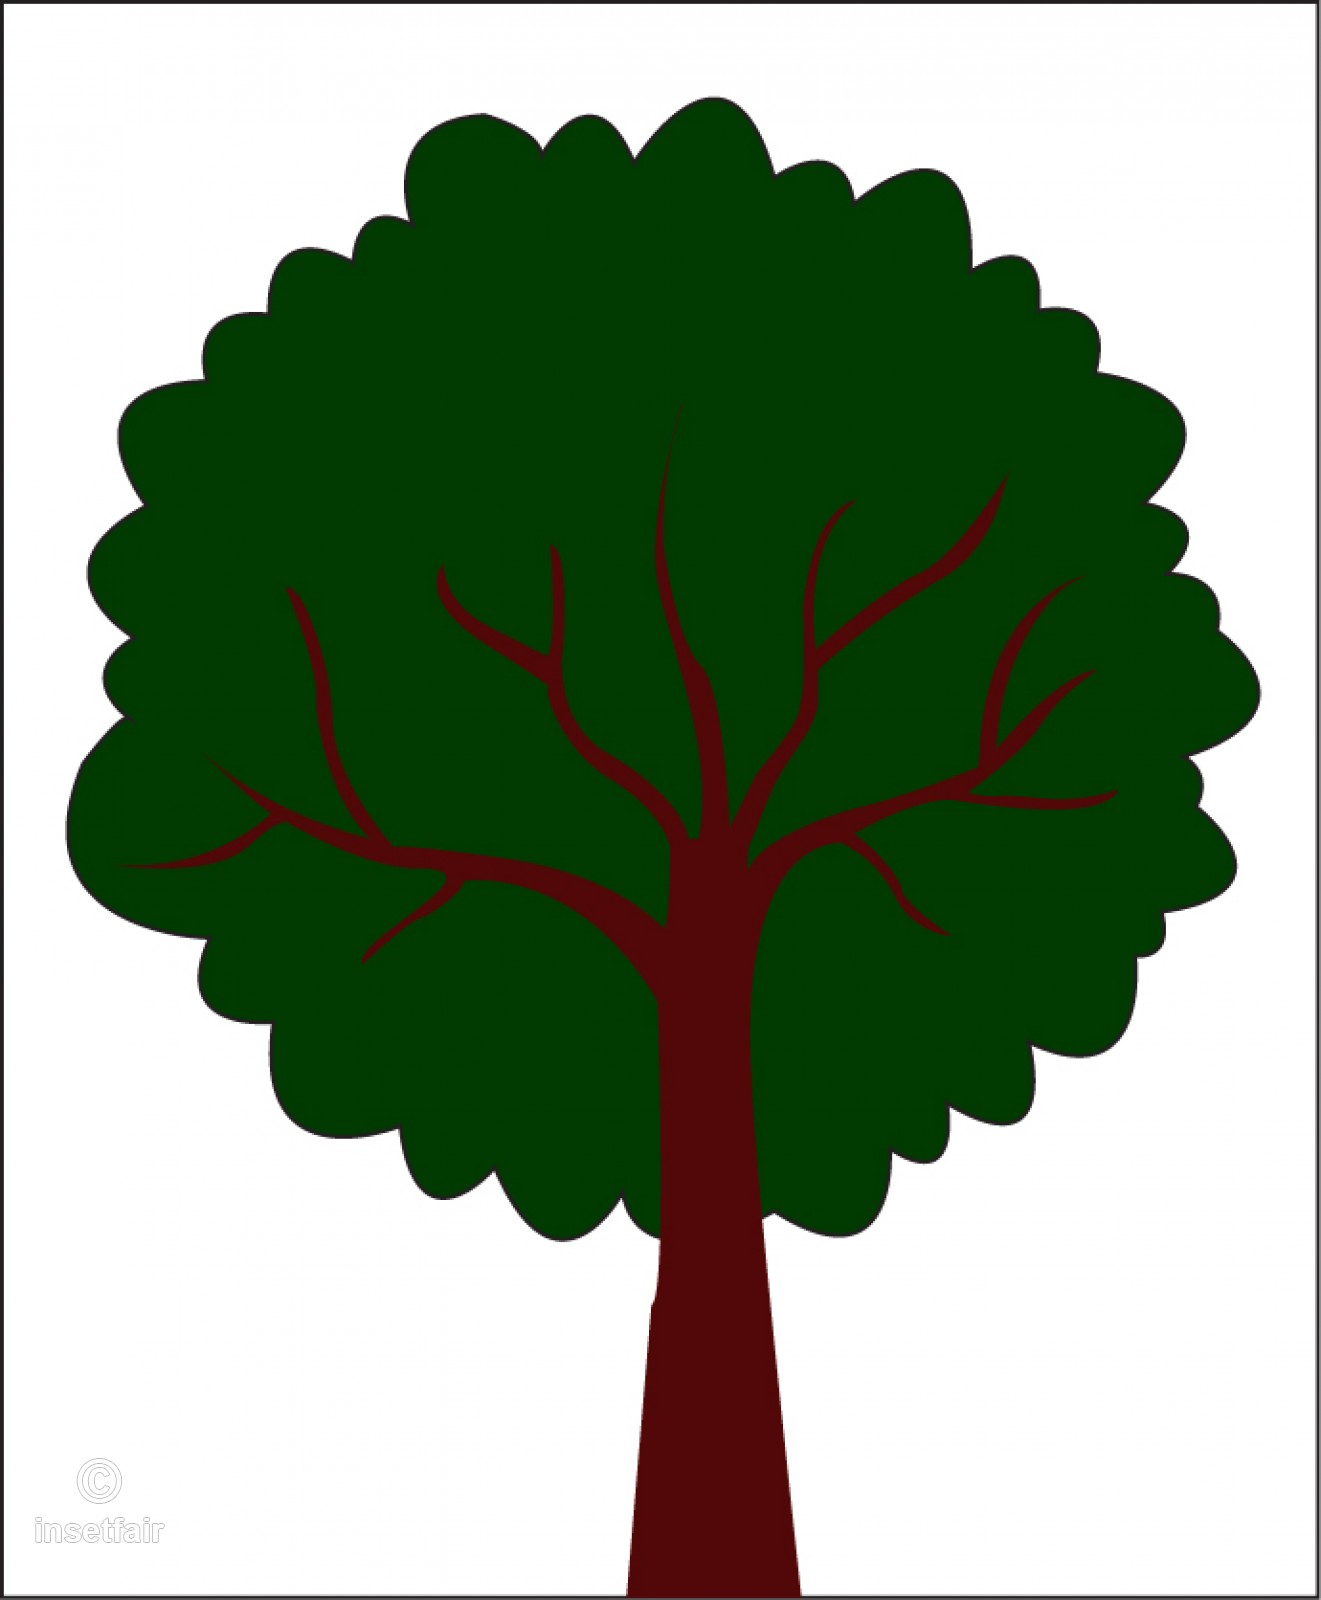 Simple green tree clipart.